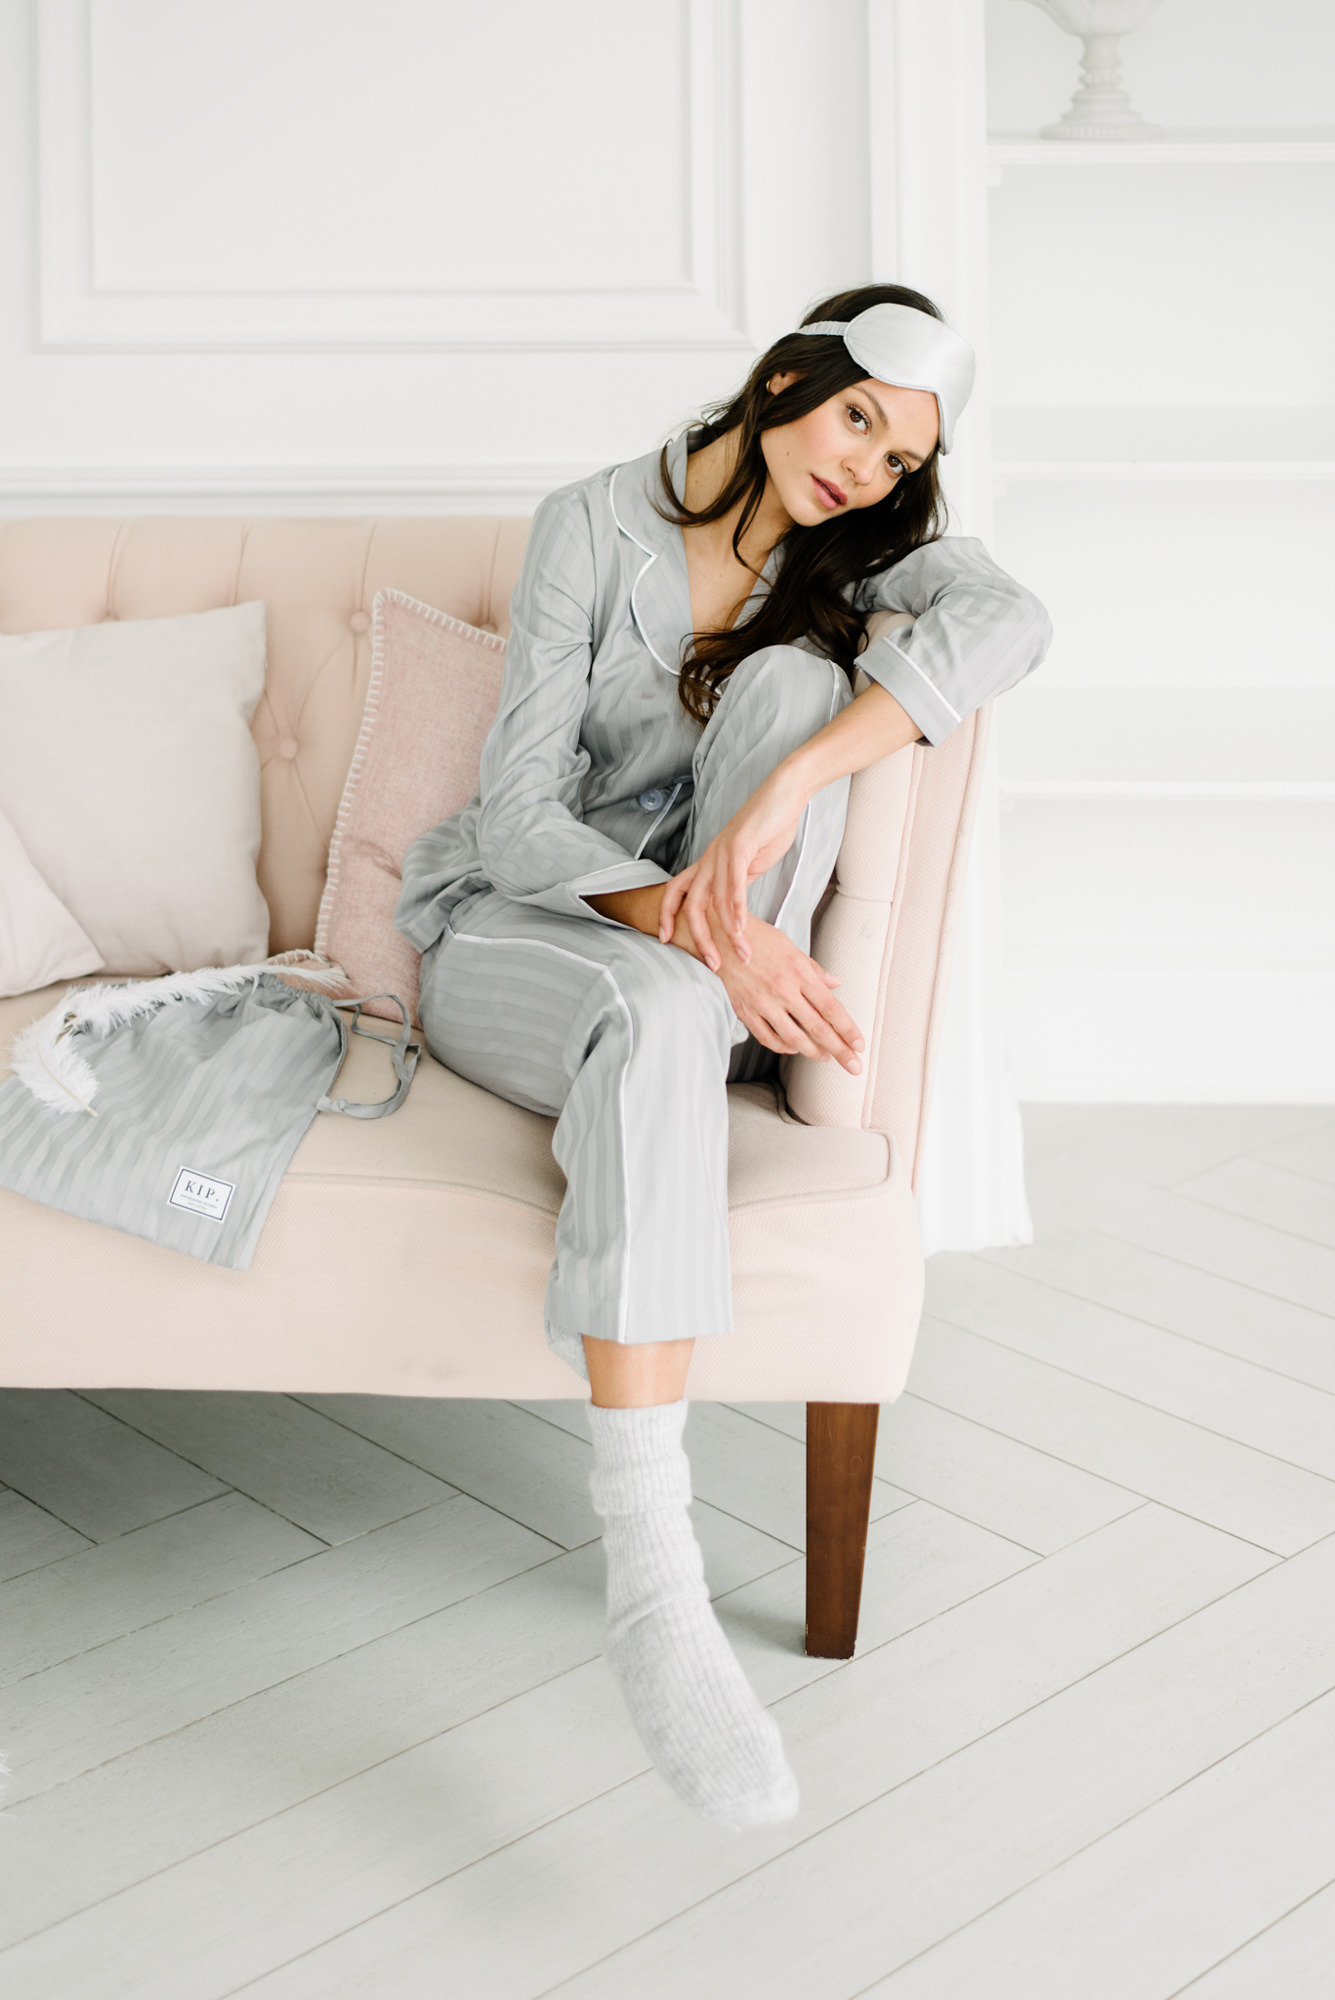 KMP sleepwear at white loft